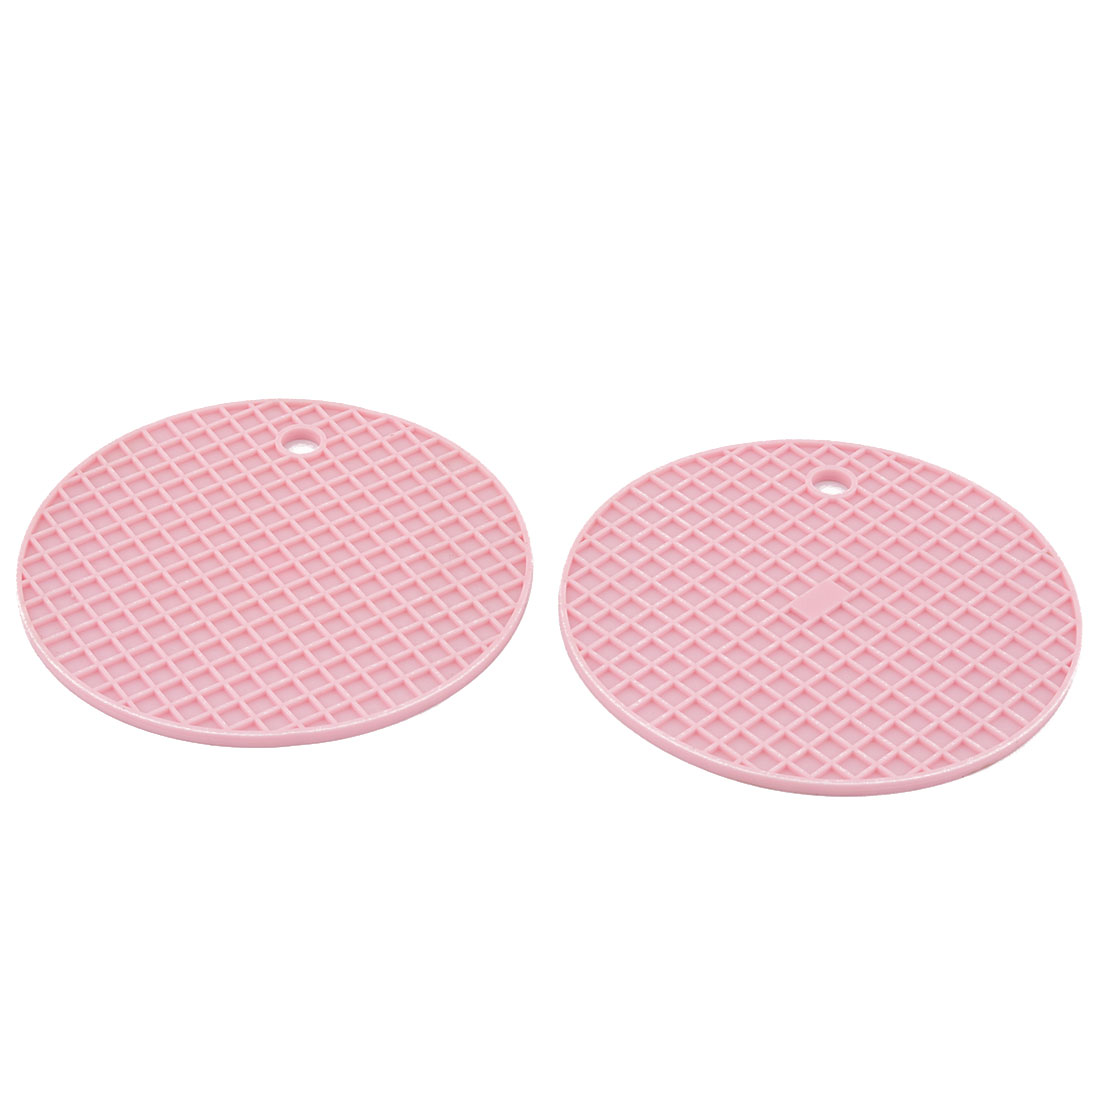 Household Kitchenware Silicone Heat Resistant Non-slip Hot Pot Dish Bowl Holder Insulation Mat Pink 2 Pcs